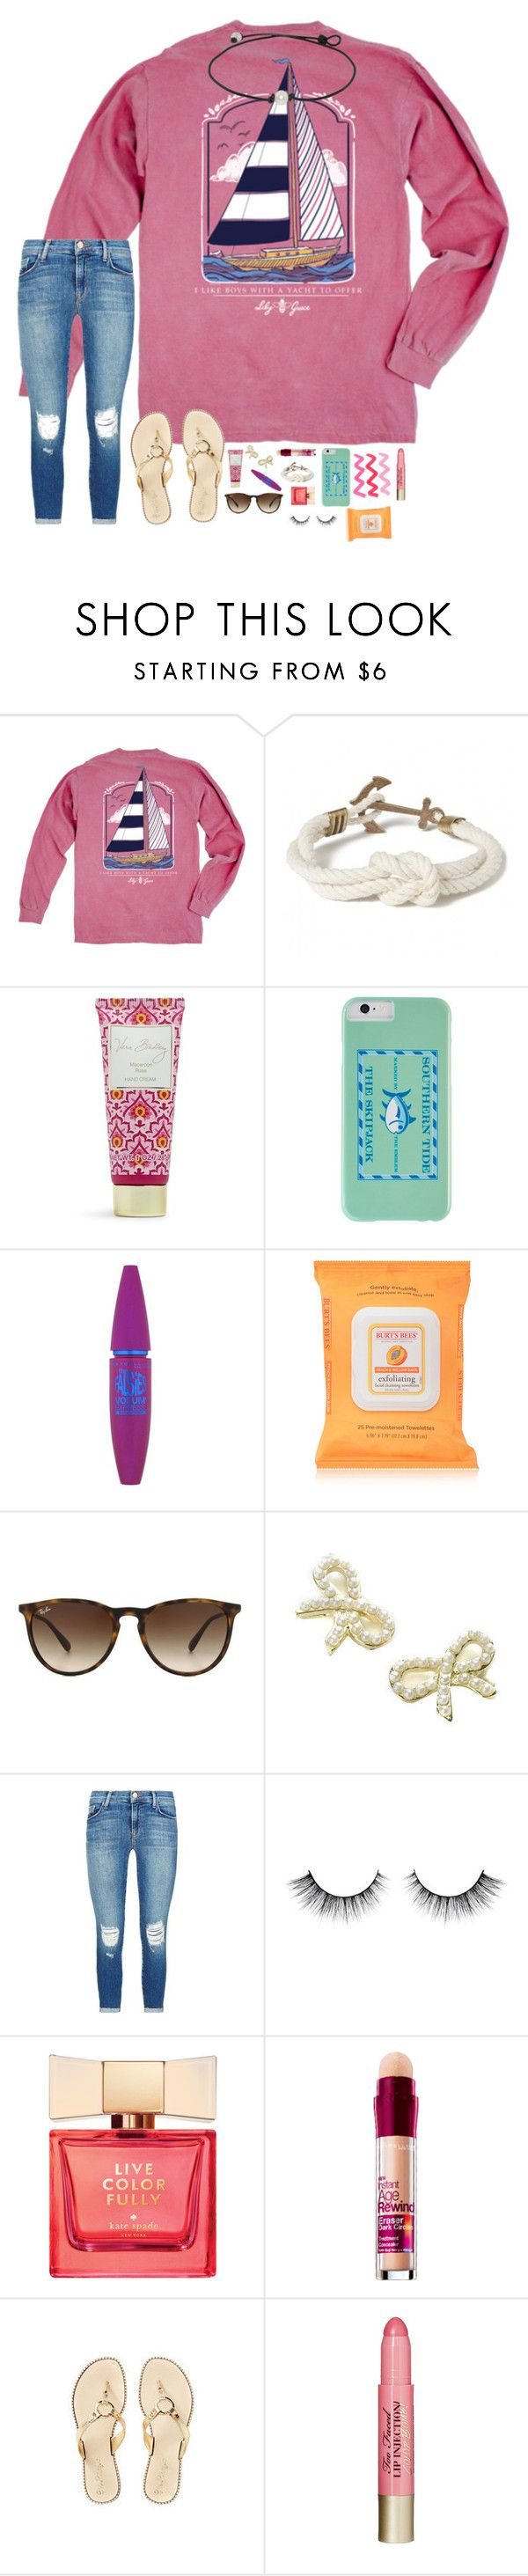 """#hawaiispringbreak2k16 ends tomorrow!!"" by hopemarlee ❤ liked on Polyvore featuring Kiel James Patrick, Vera Bradley, Southern Tide, Maybelline, Burt's Bees, Ray-Ban, Monsoon, J Brand, Kate Spade and Lilly Pulitzer"